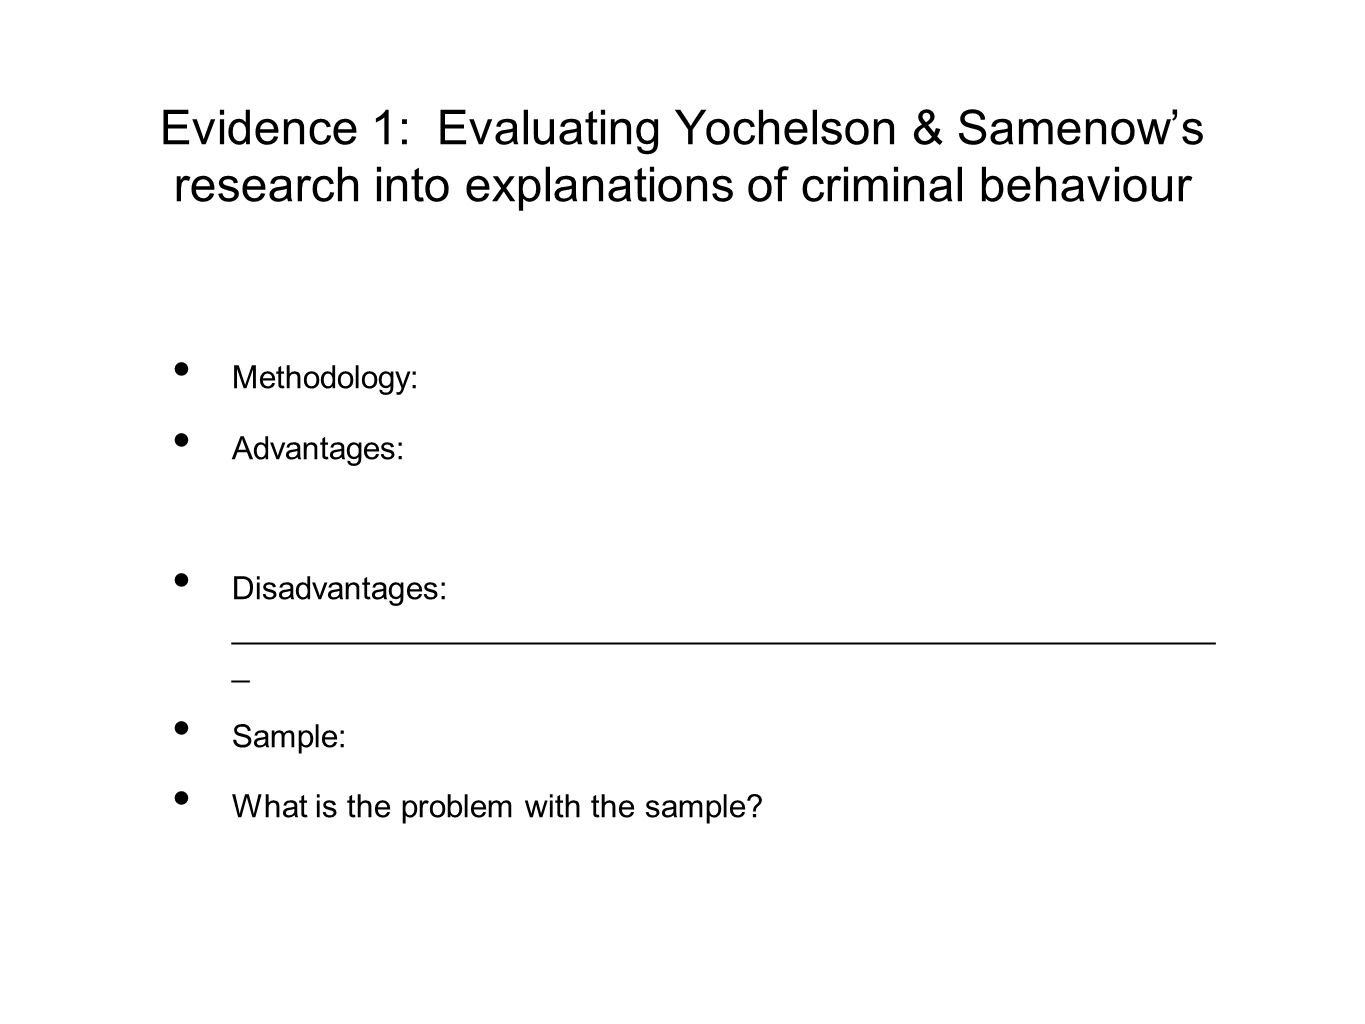 Evidence 1: Evaluating Yochelson & Samenow's research into explanations of criminal behaviour Methodology: Advantages: Disadvantages: ________________